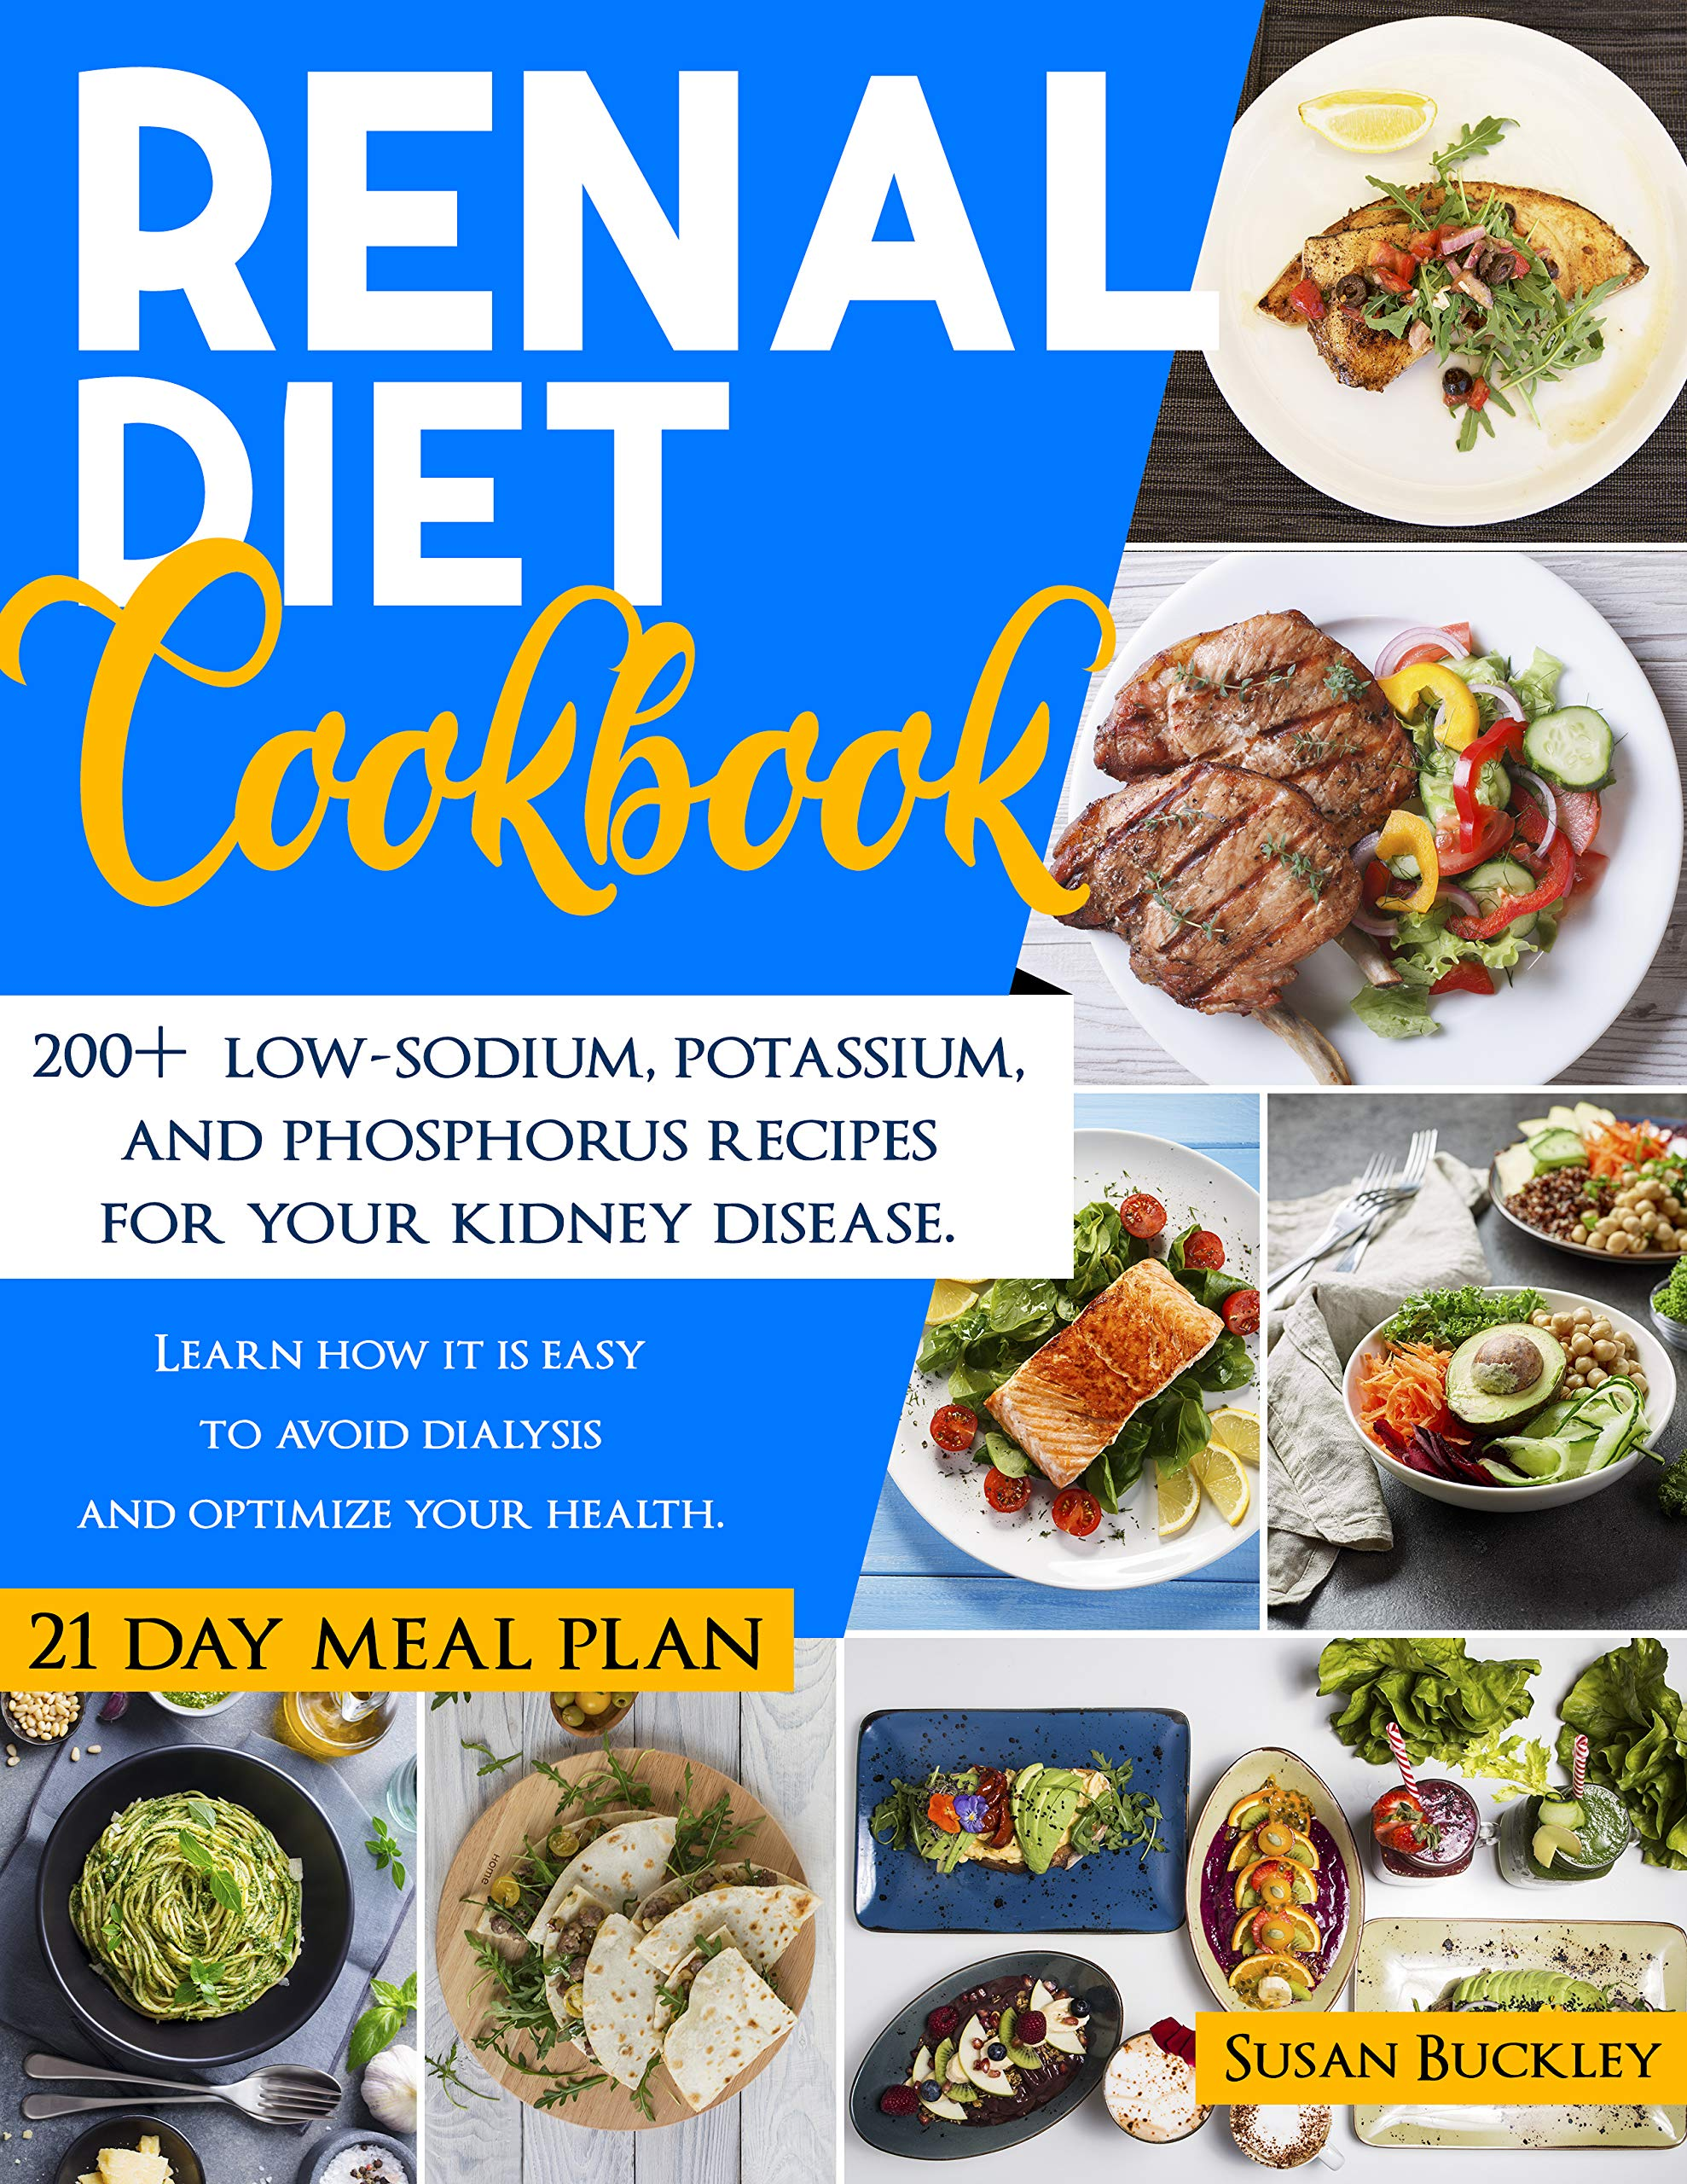 Renal Diet Cookbook: 200+ Low-Sodium, Potassium and Phosphorus Recipes for Your Kidney Disease. Learn How it is Easy to Avoid Dialysis and Optimize Your Health